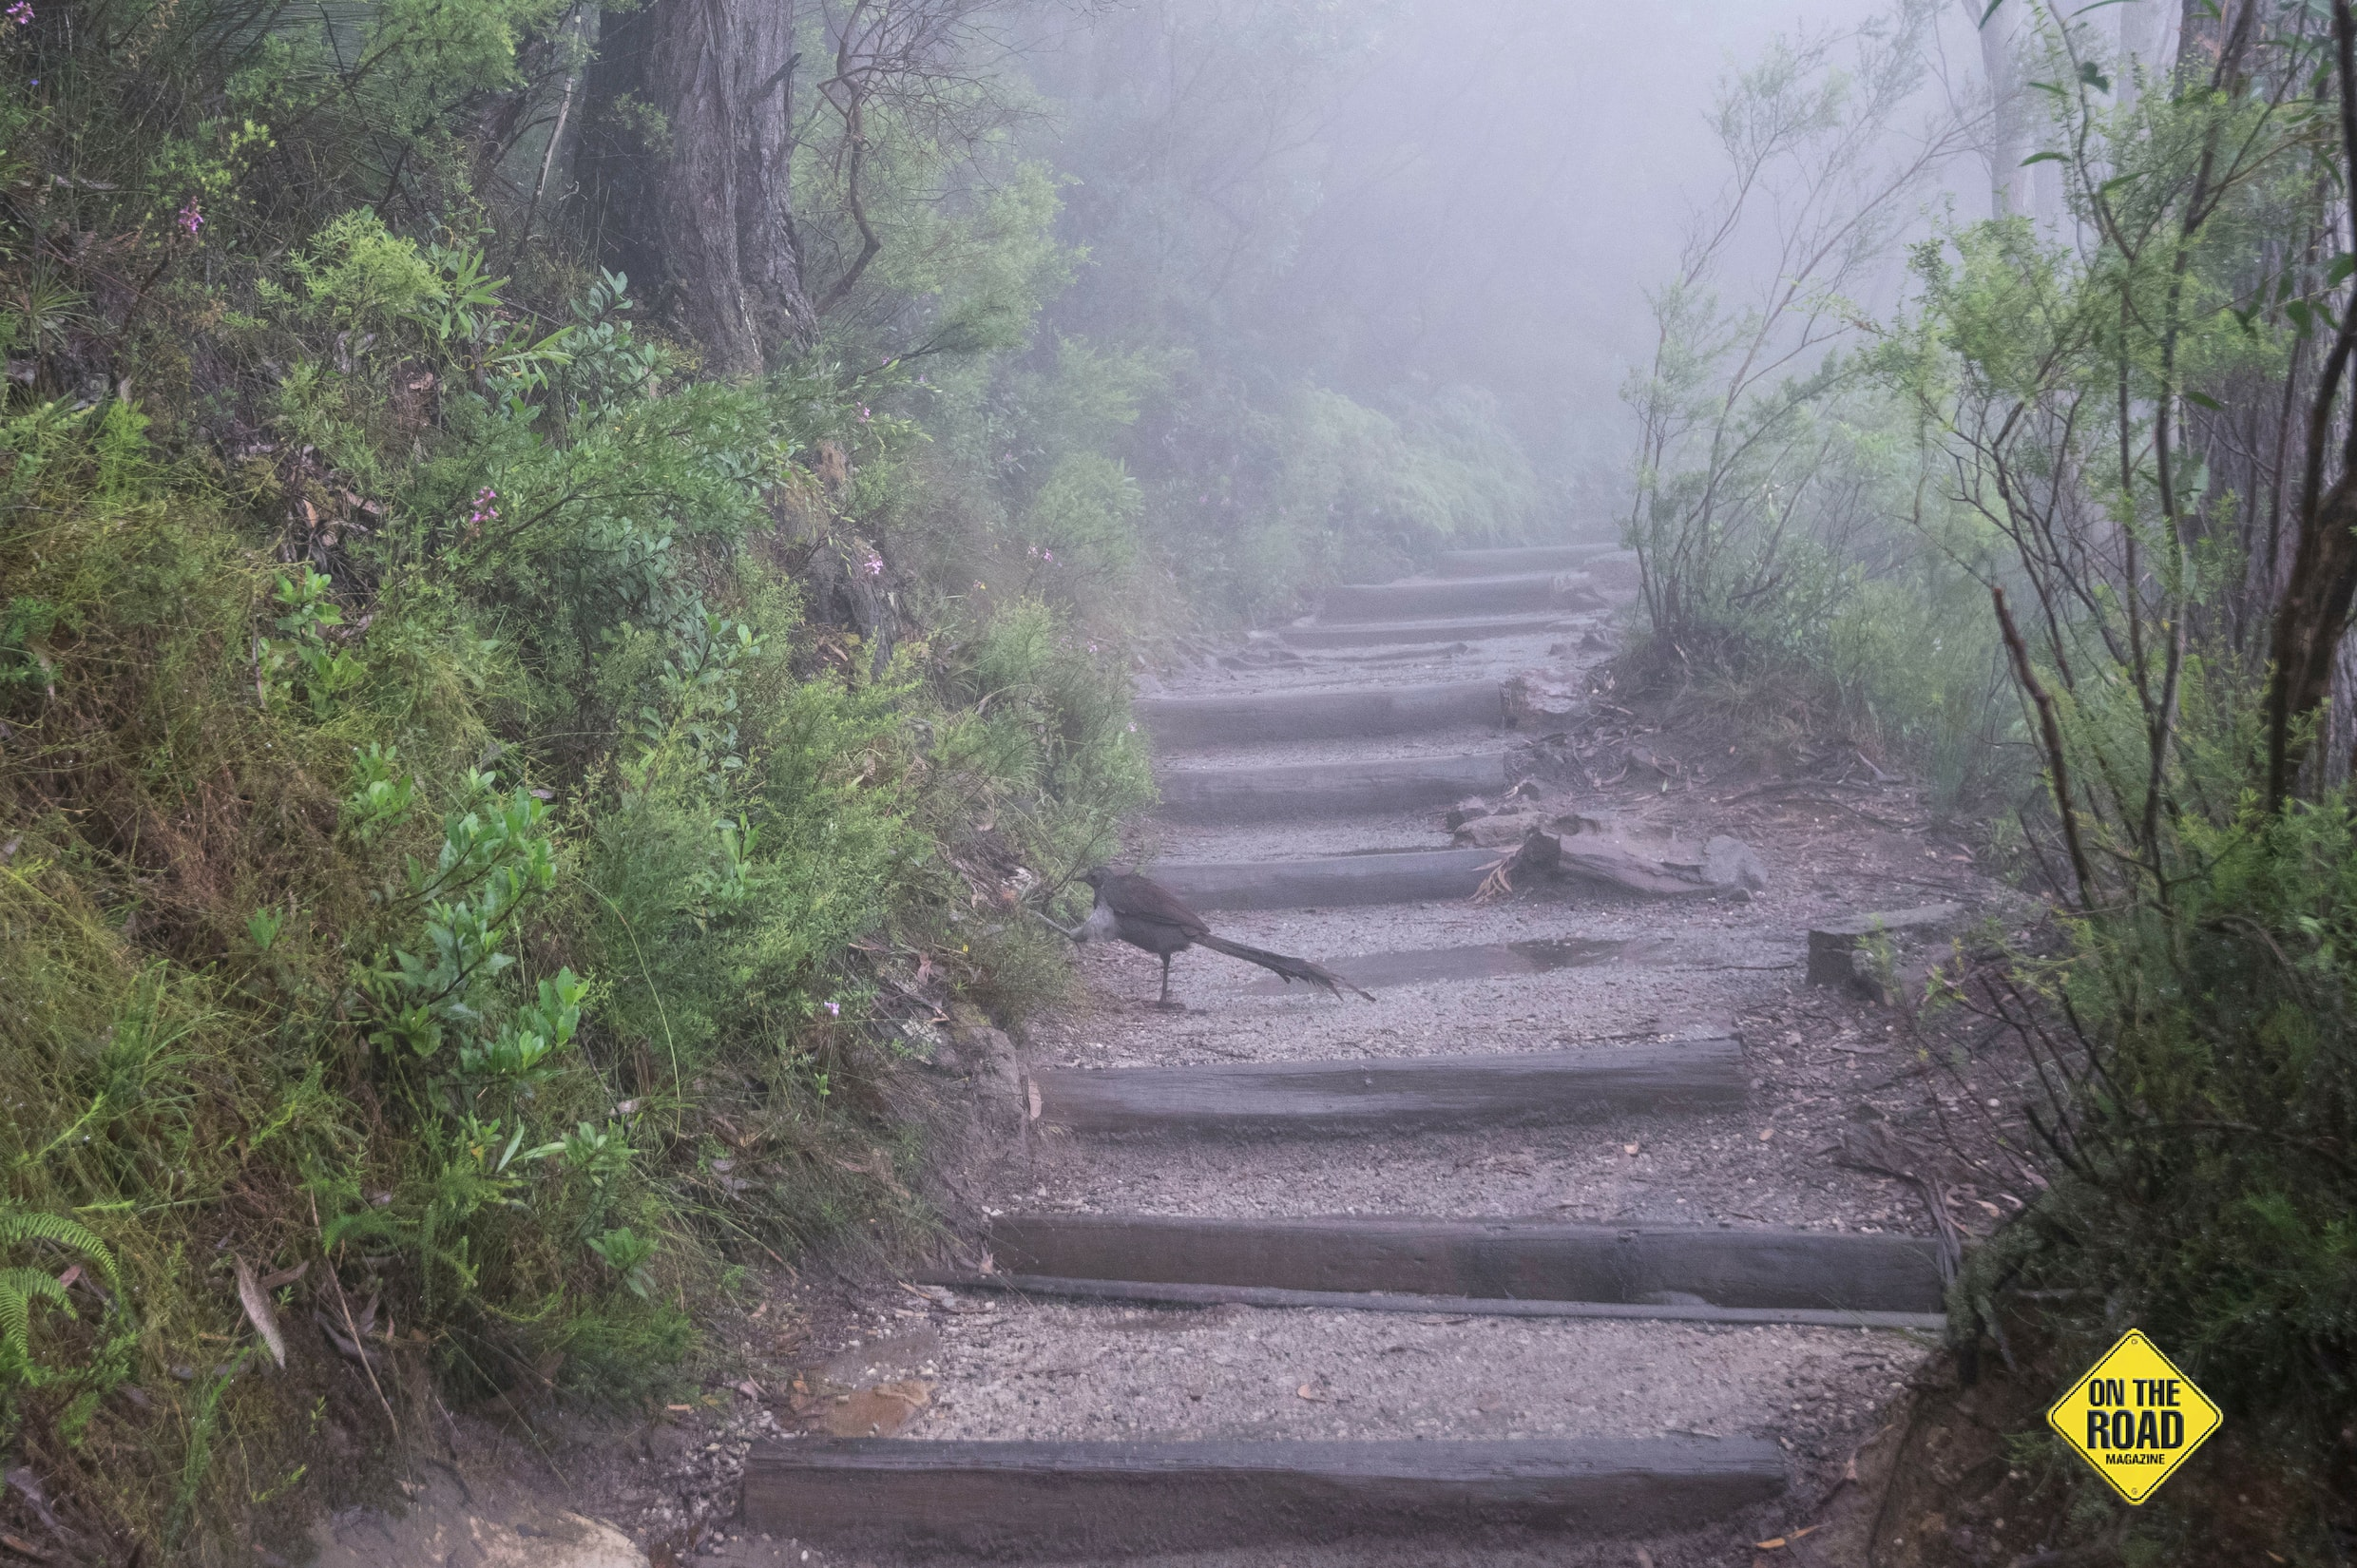 Lucky walkers may encounter a lyrebird scratching in the leaf litter as they make their way through the fog